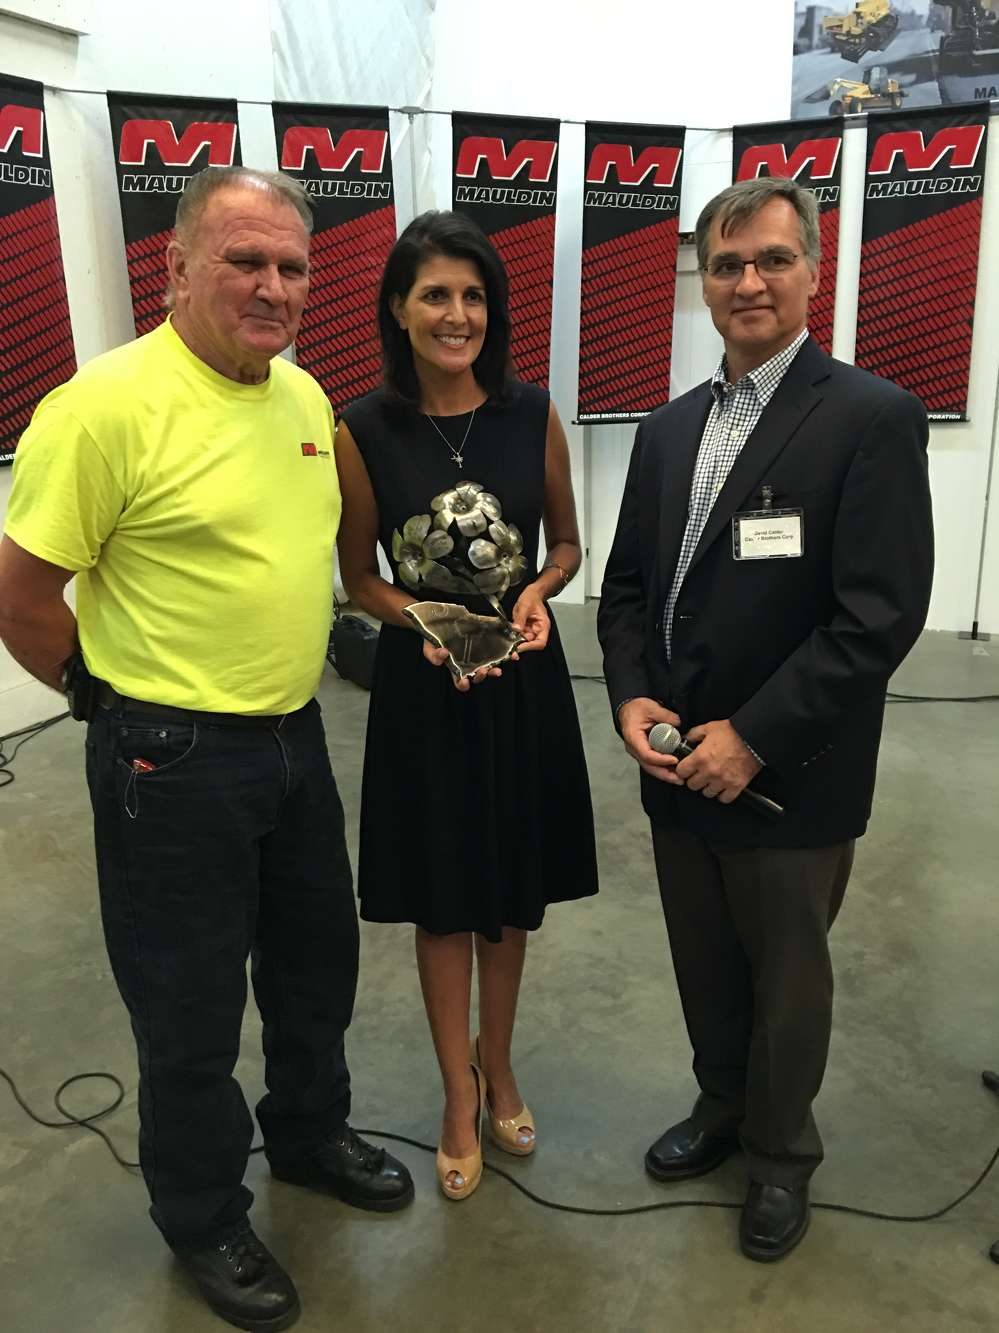 John Craig (L), master welder of Calder Brothers, and David Calder present Gov. Nikki Haley with this one of kind steel welded sculpture of a Yellow Jessamine, South Carolina's state made by Craig on behalf of Calder Brothers.